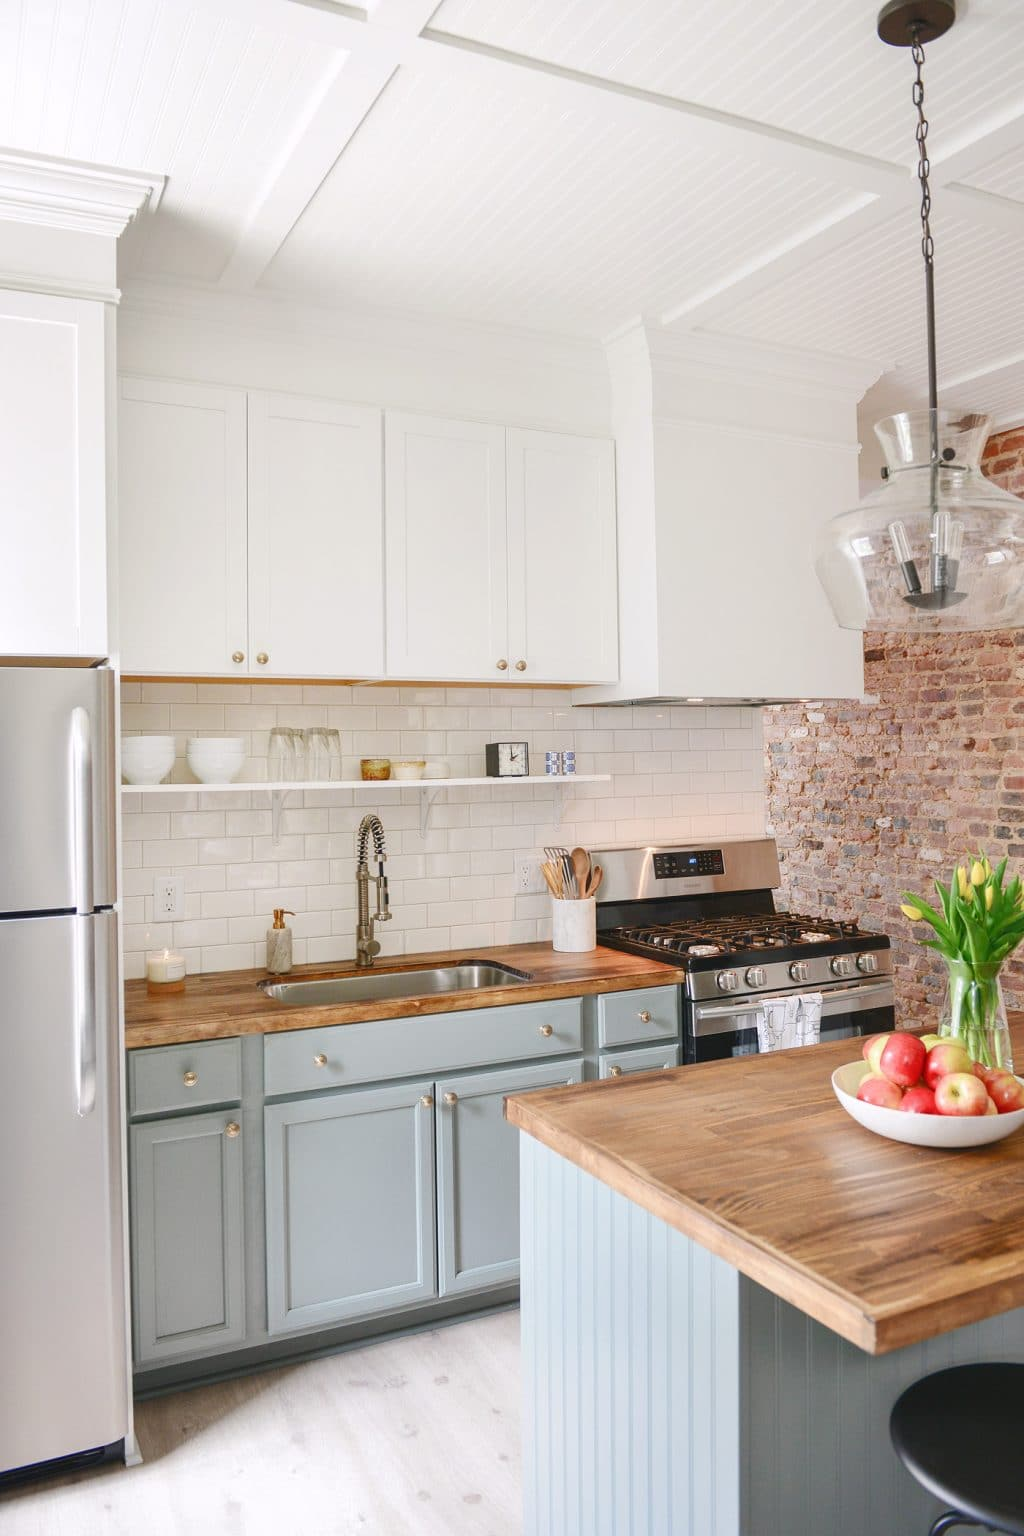 ORC inspiration: raised cabinets with shelf underneath